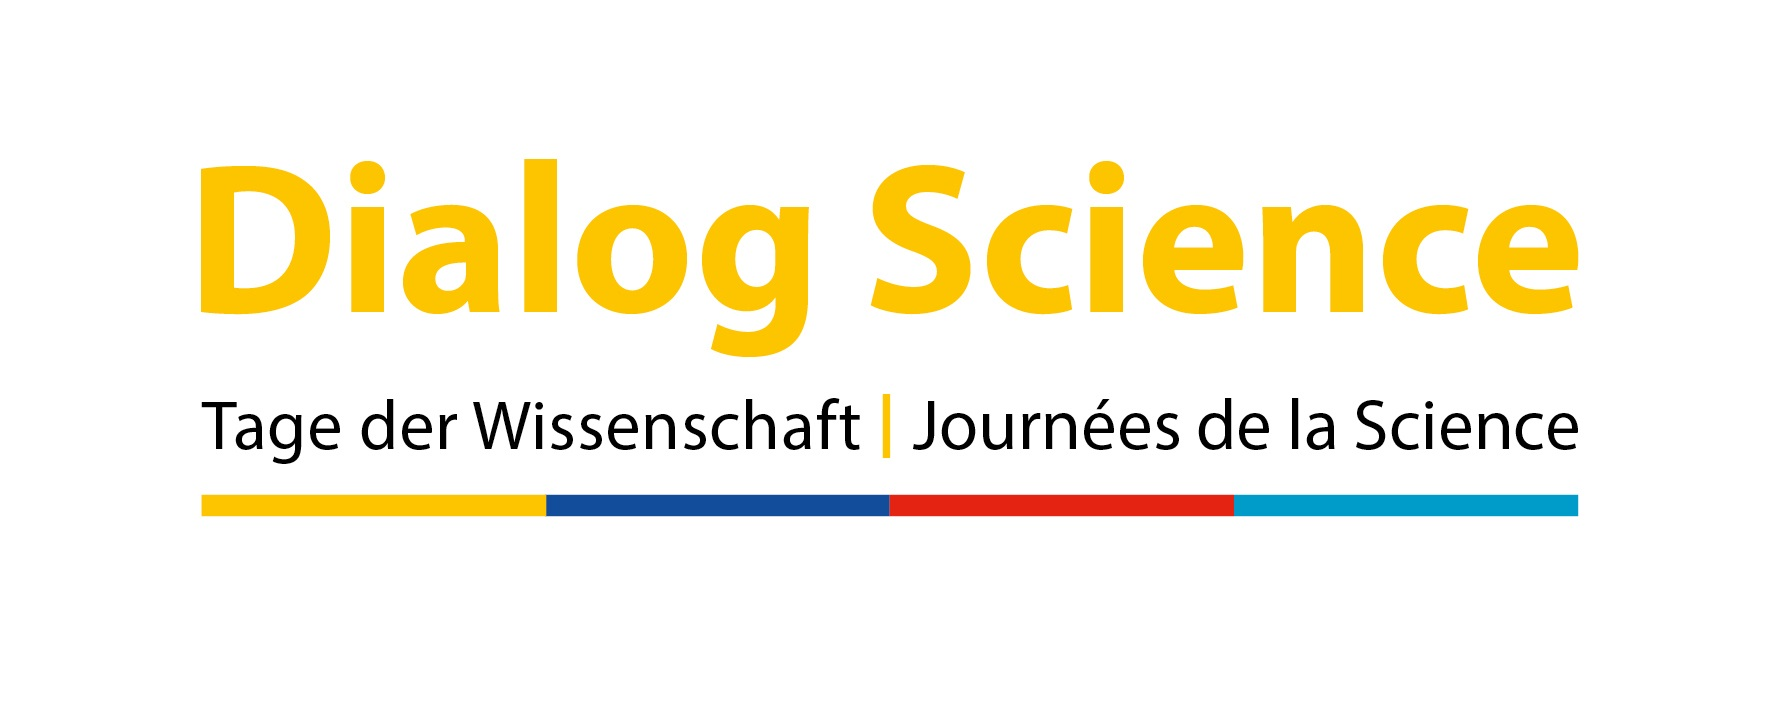 logo_dialog-science_gross.jpg